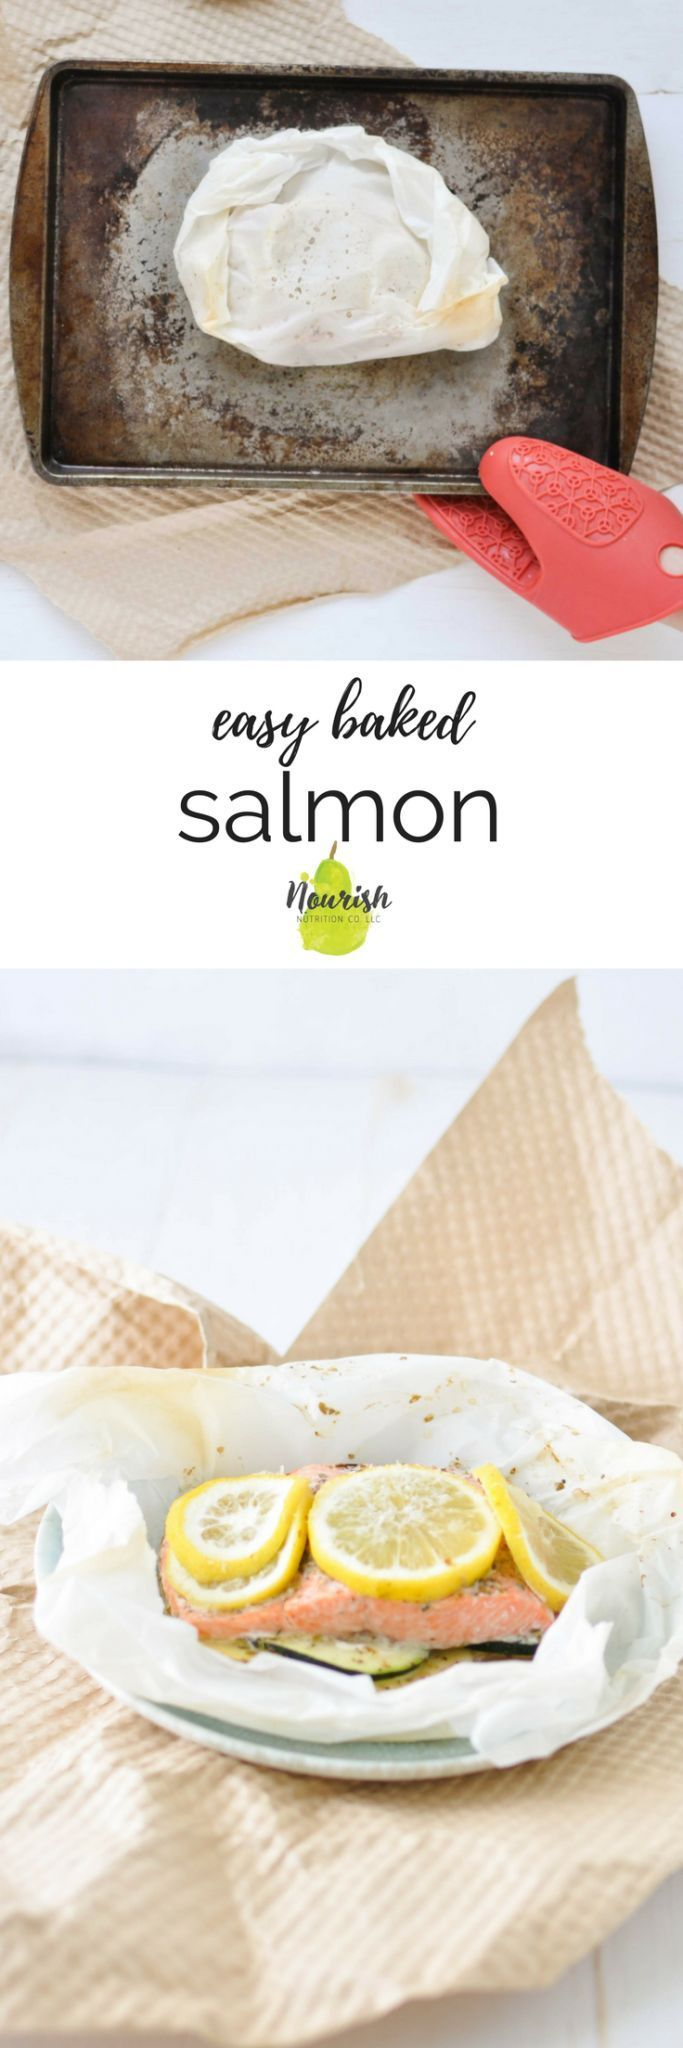 easy baked salmon | salmon en papillote | baking your favorite fish in parchment paper makes for the easiest 20 minute dinner with zero clean-up| how to cook | #simple #ovens #lemon #recipes via @nourishnutrico